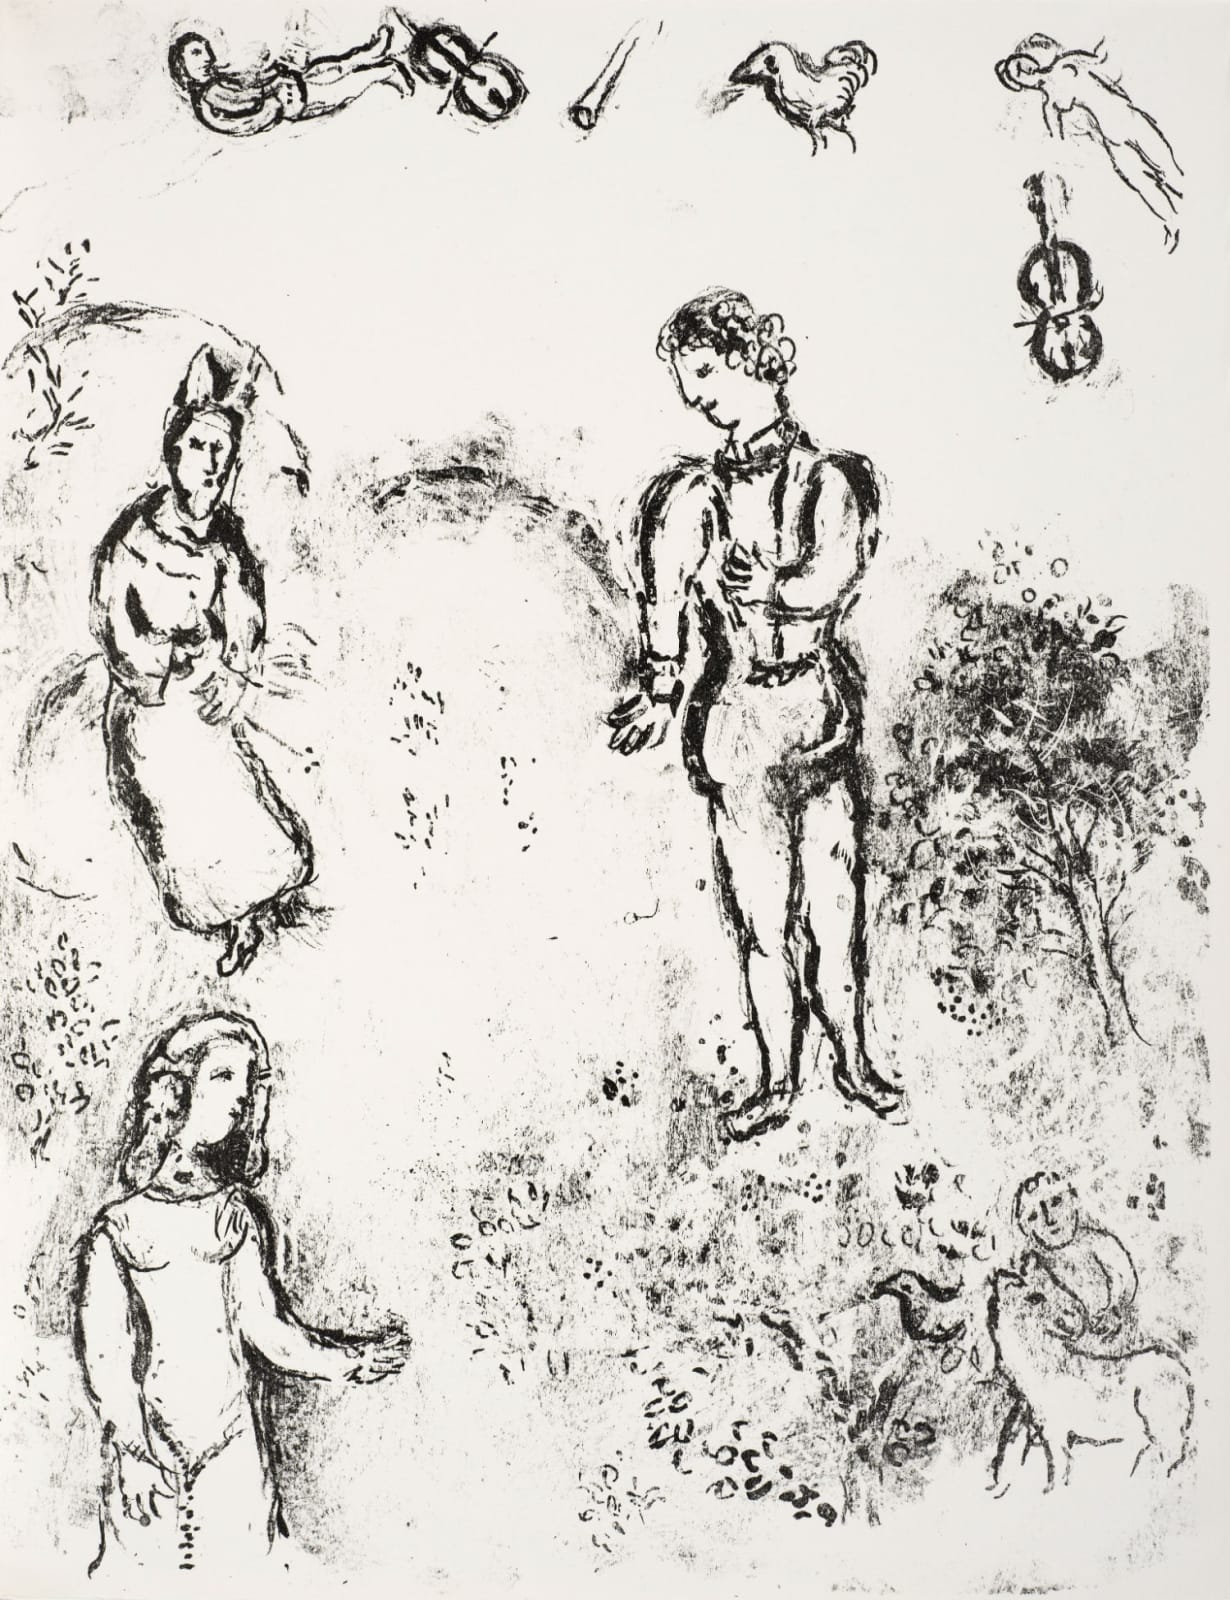 Marc Chagall (1887-1985) Ferdinand, Miranda, and Prospero, with musical Spirits flying above (Series: Shakespeare The Tempest) 1975 Lithograph 42.5 x 32.5 cm Ben Uri Collection © Marc Chagall estate To see and discover more about this artist click here